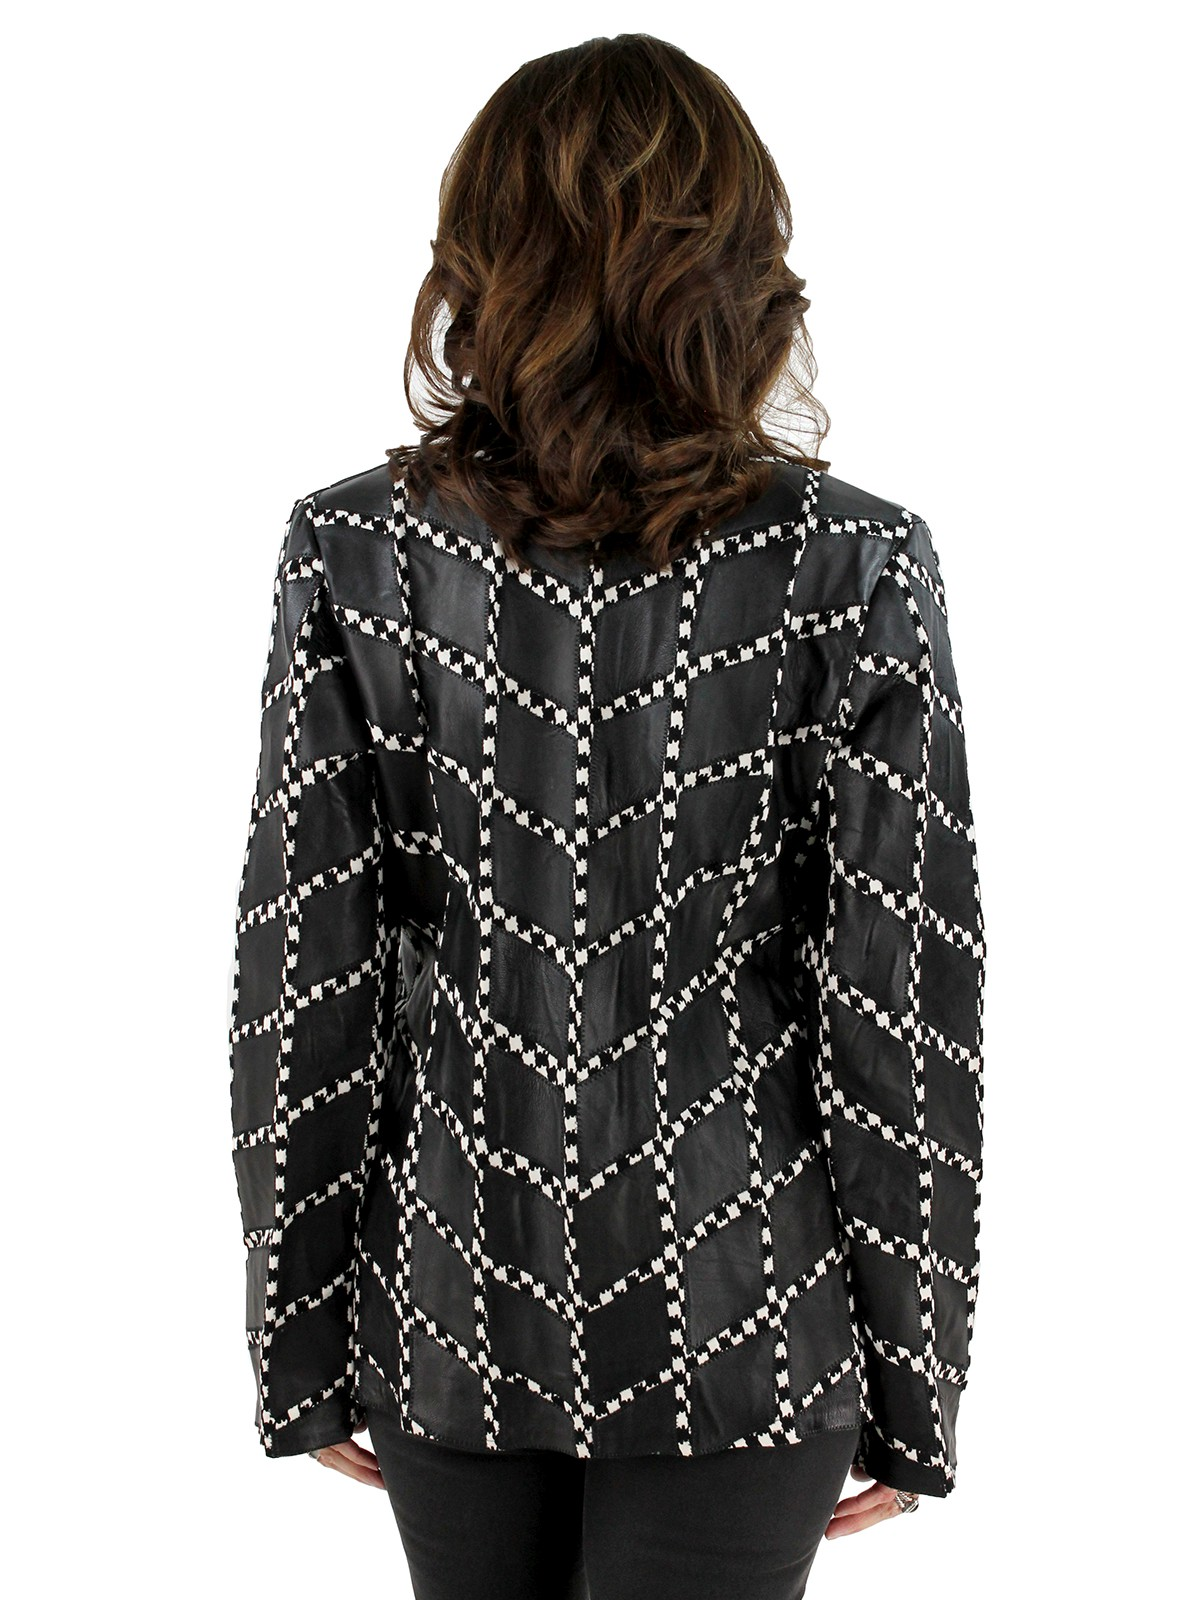 Houndstooth Leather Pattern Jacket